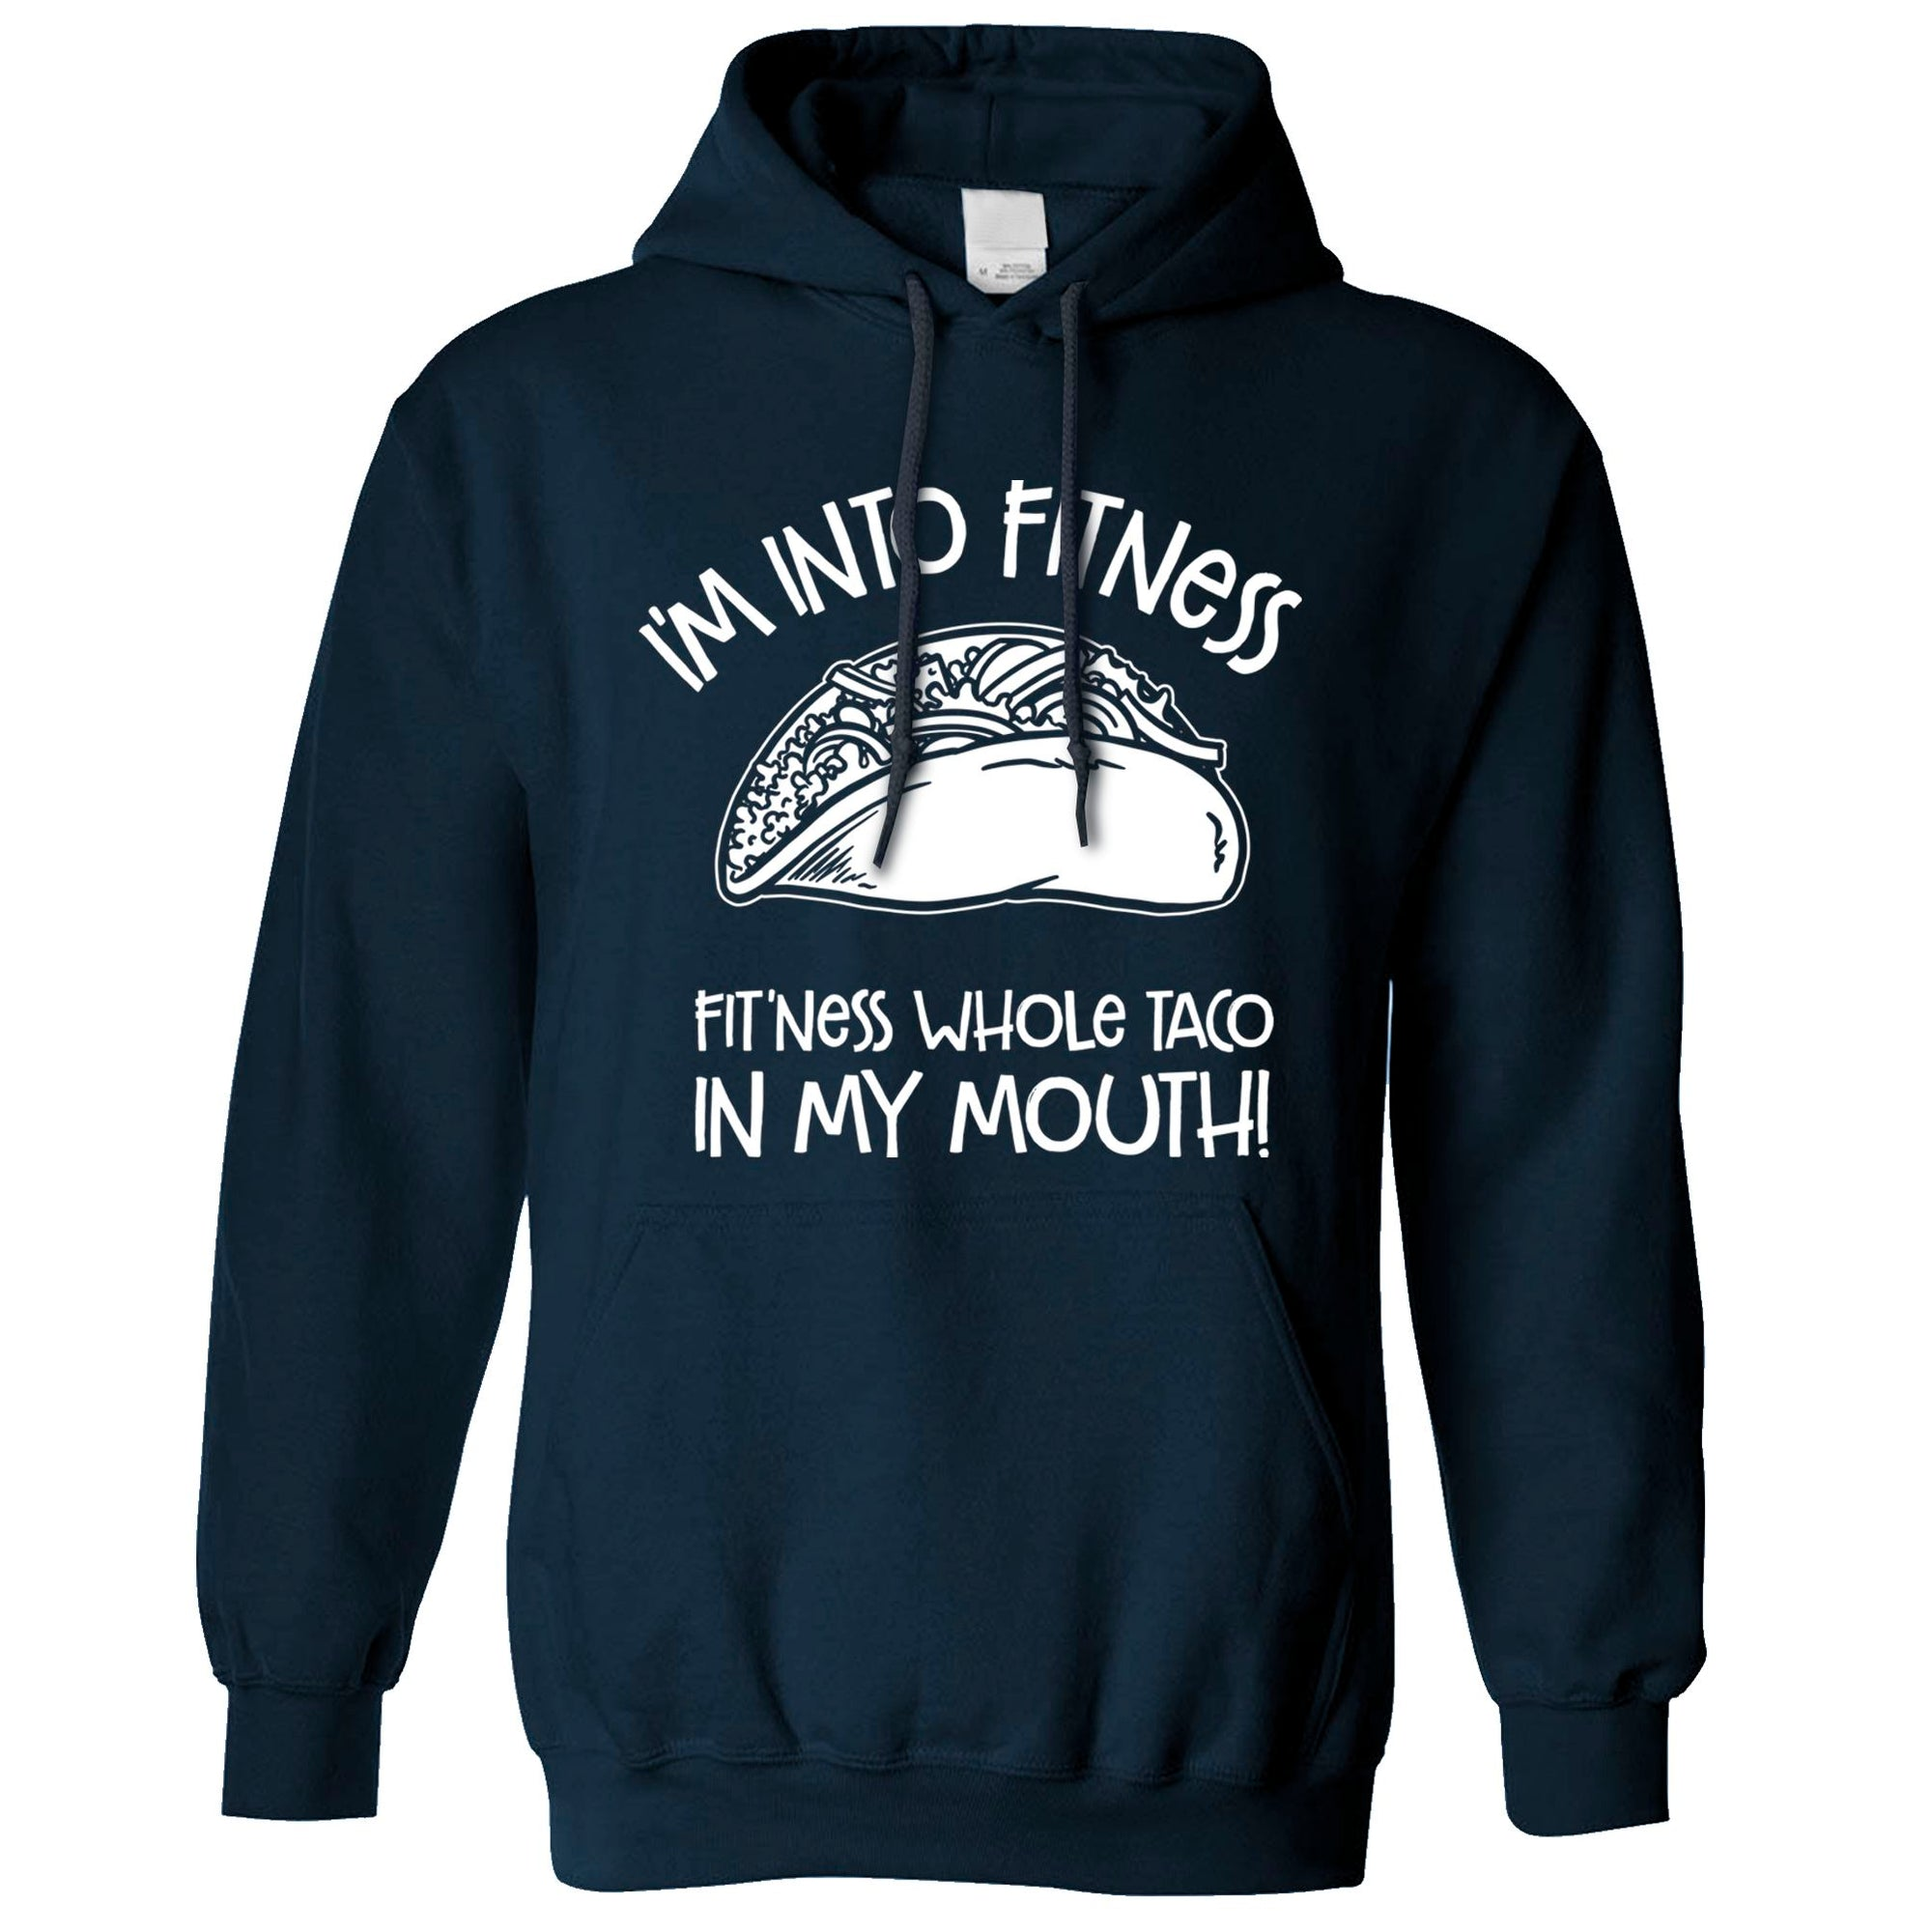 Funny Hoodie I'm Into Fitness Whole Taco In My Mouth Hooded Jumper